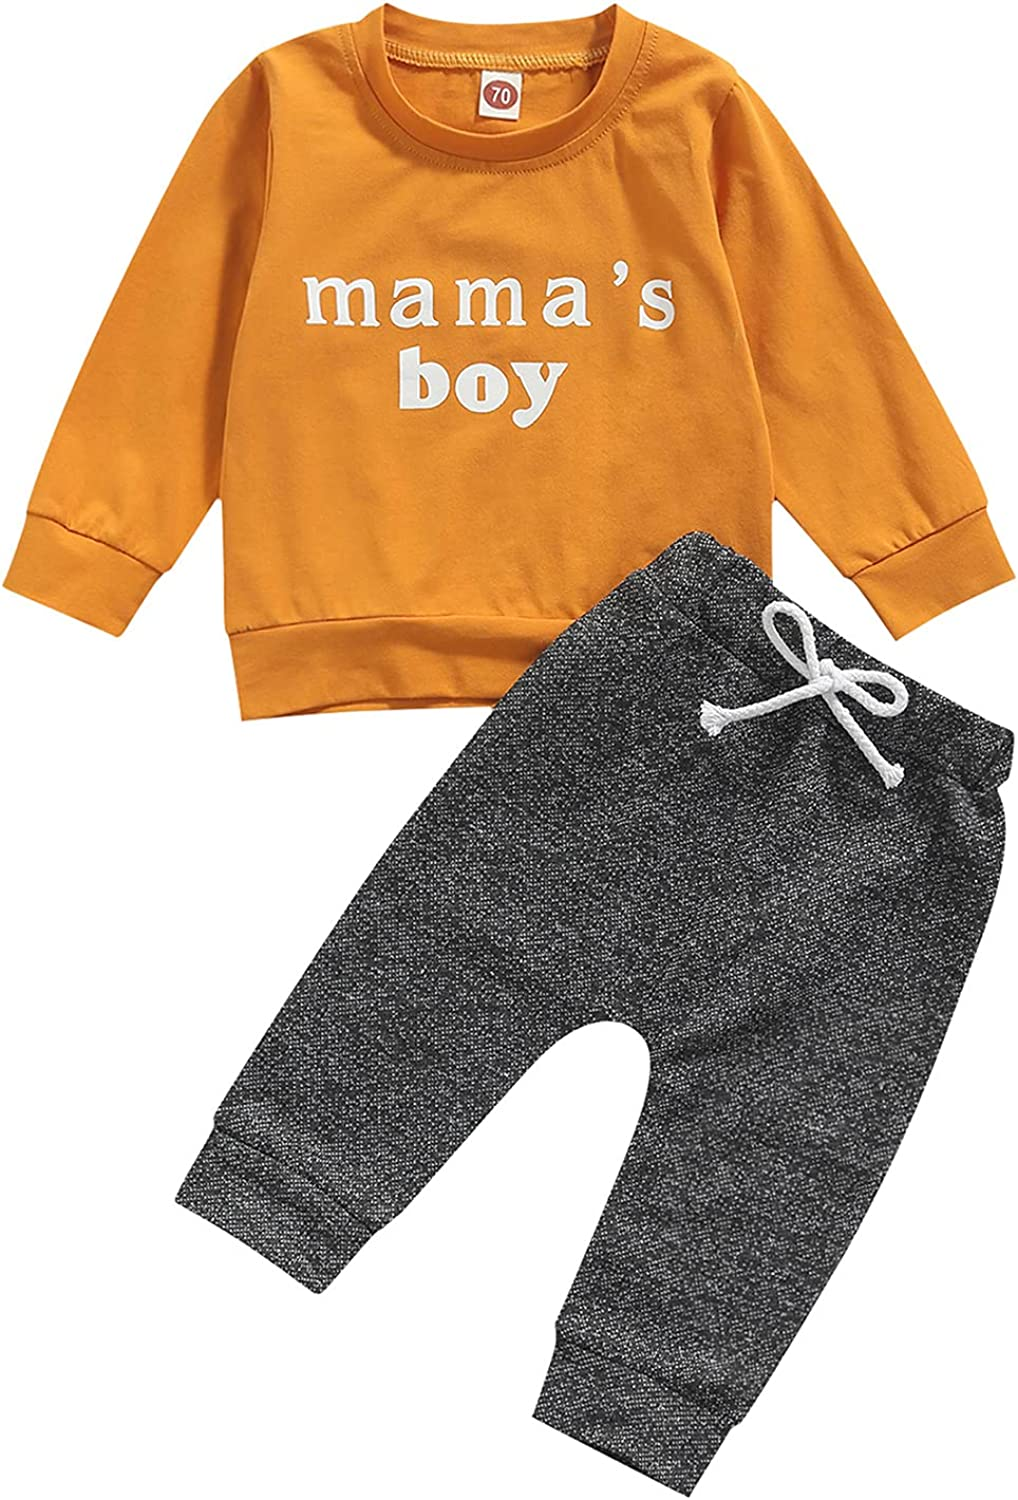 Newborn Baby Boys Clothes Set Letter Print Long Sleeve Pullover Shirt Tops and Pants Sweatsuit Outfit Set